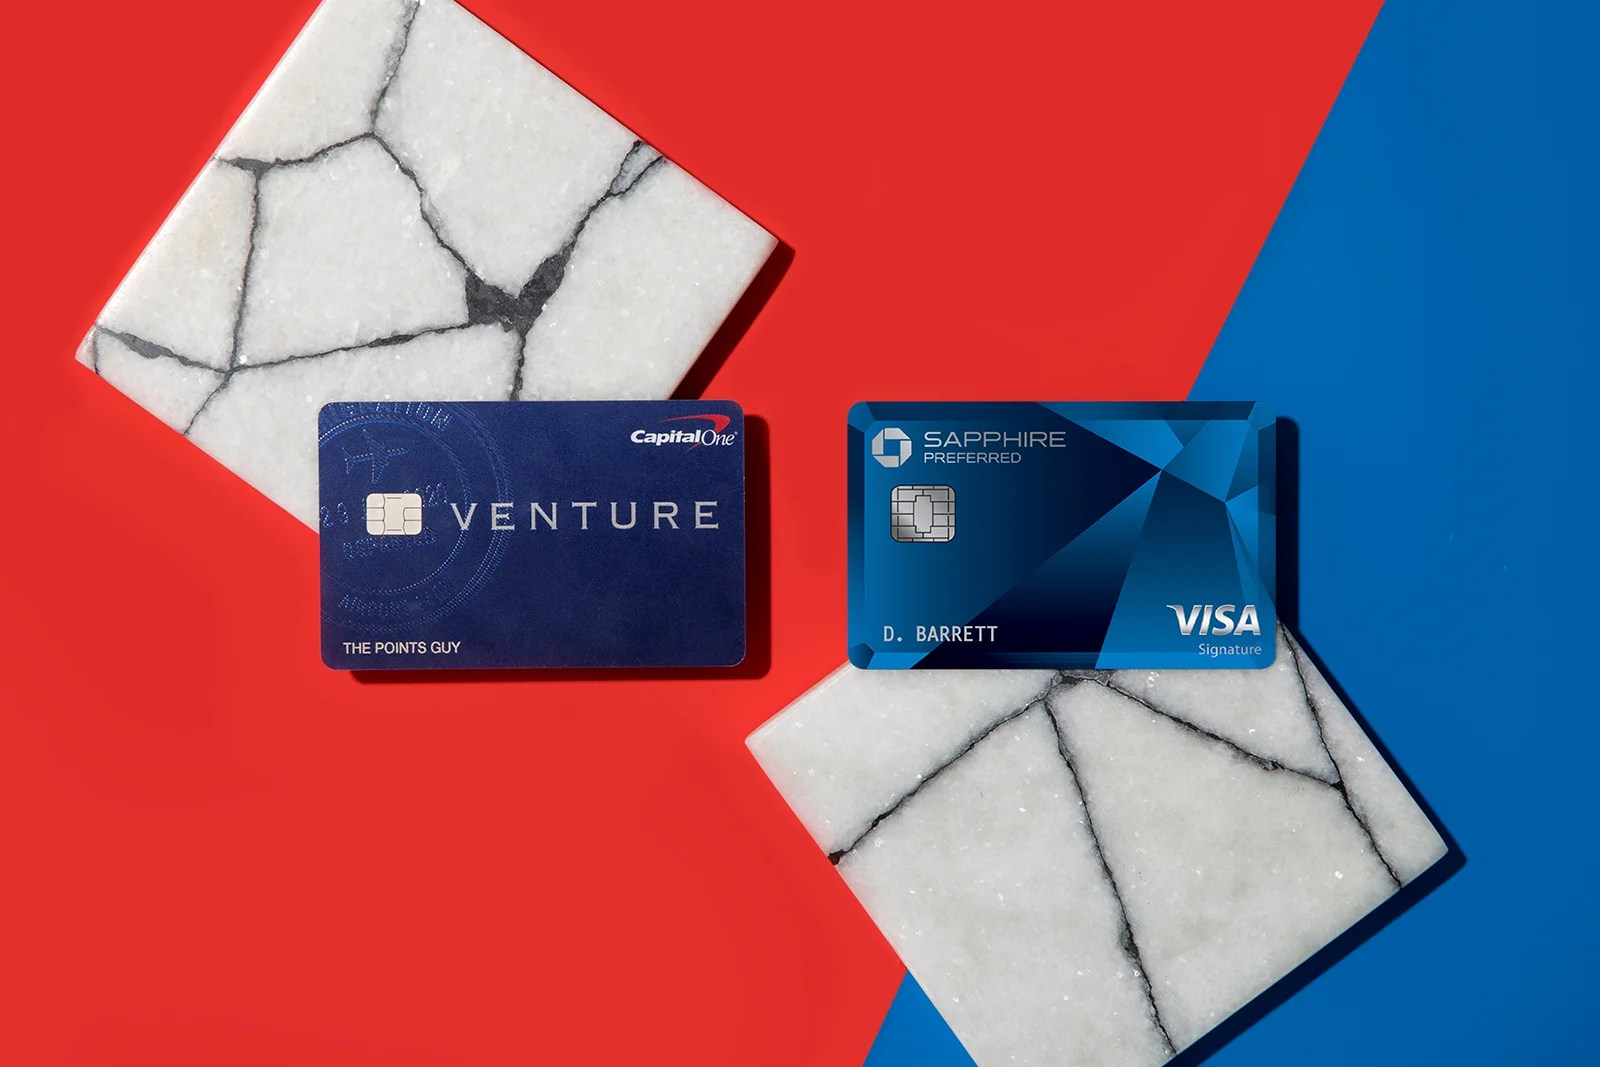 monthly payment for capital one credit card